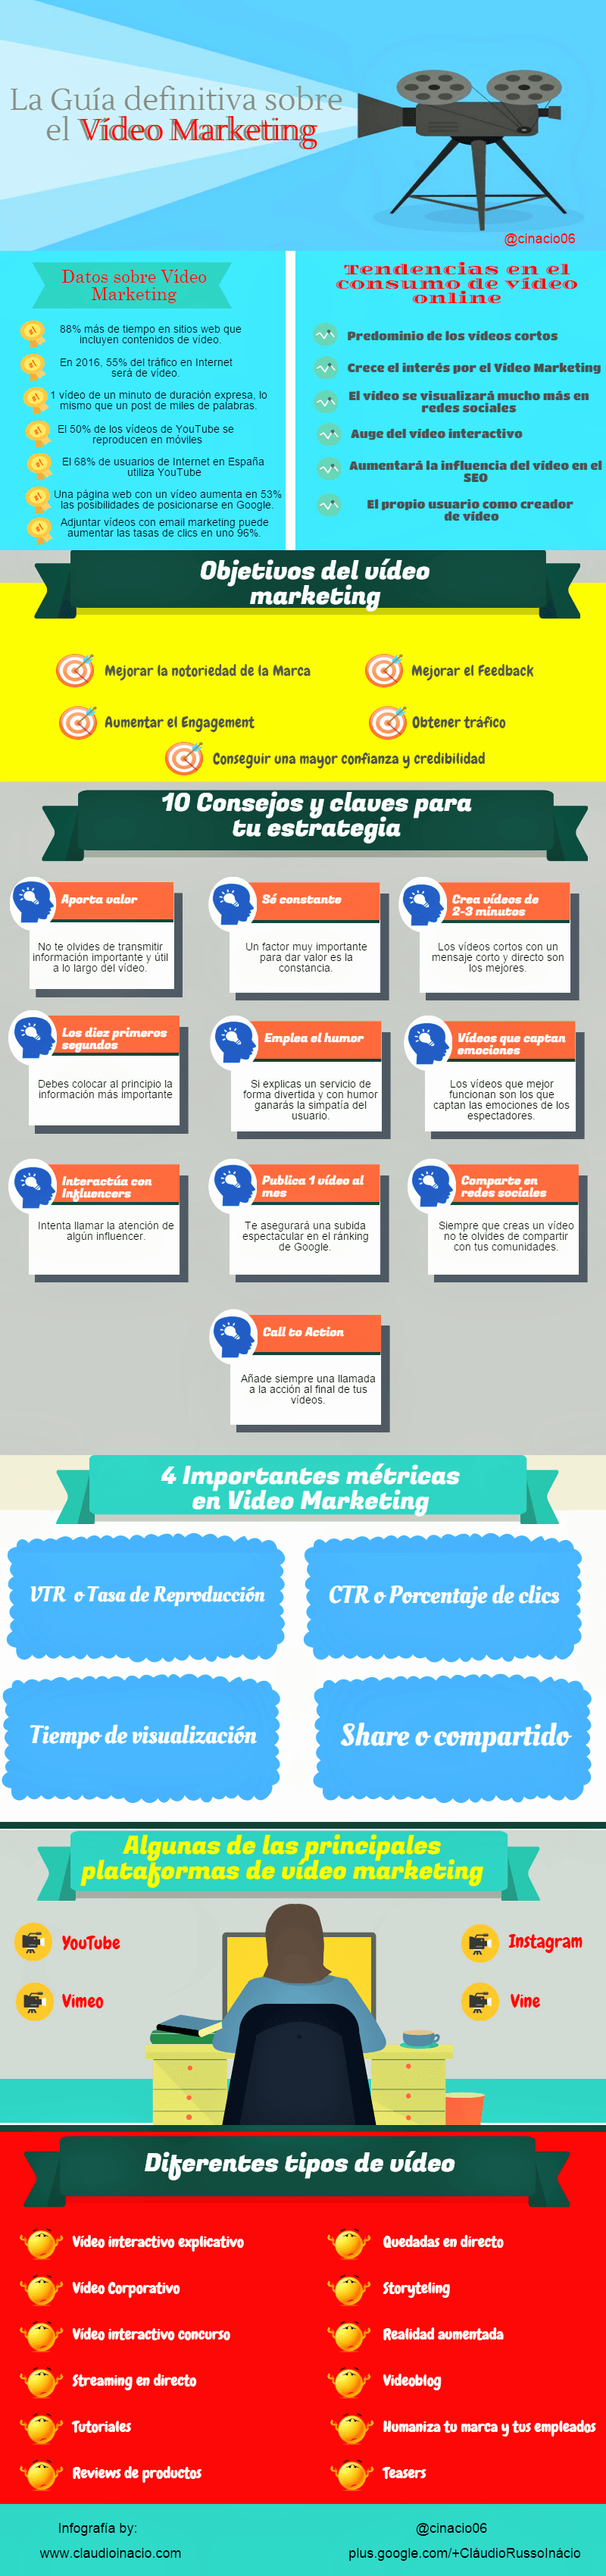 infografia guía de vídeo marketing